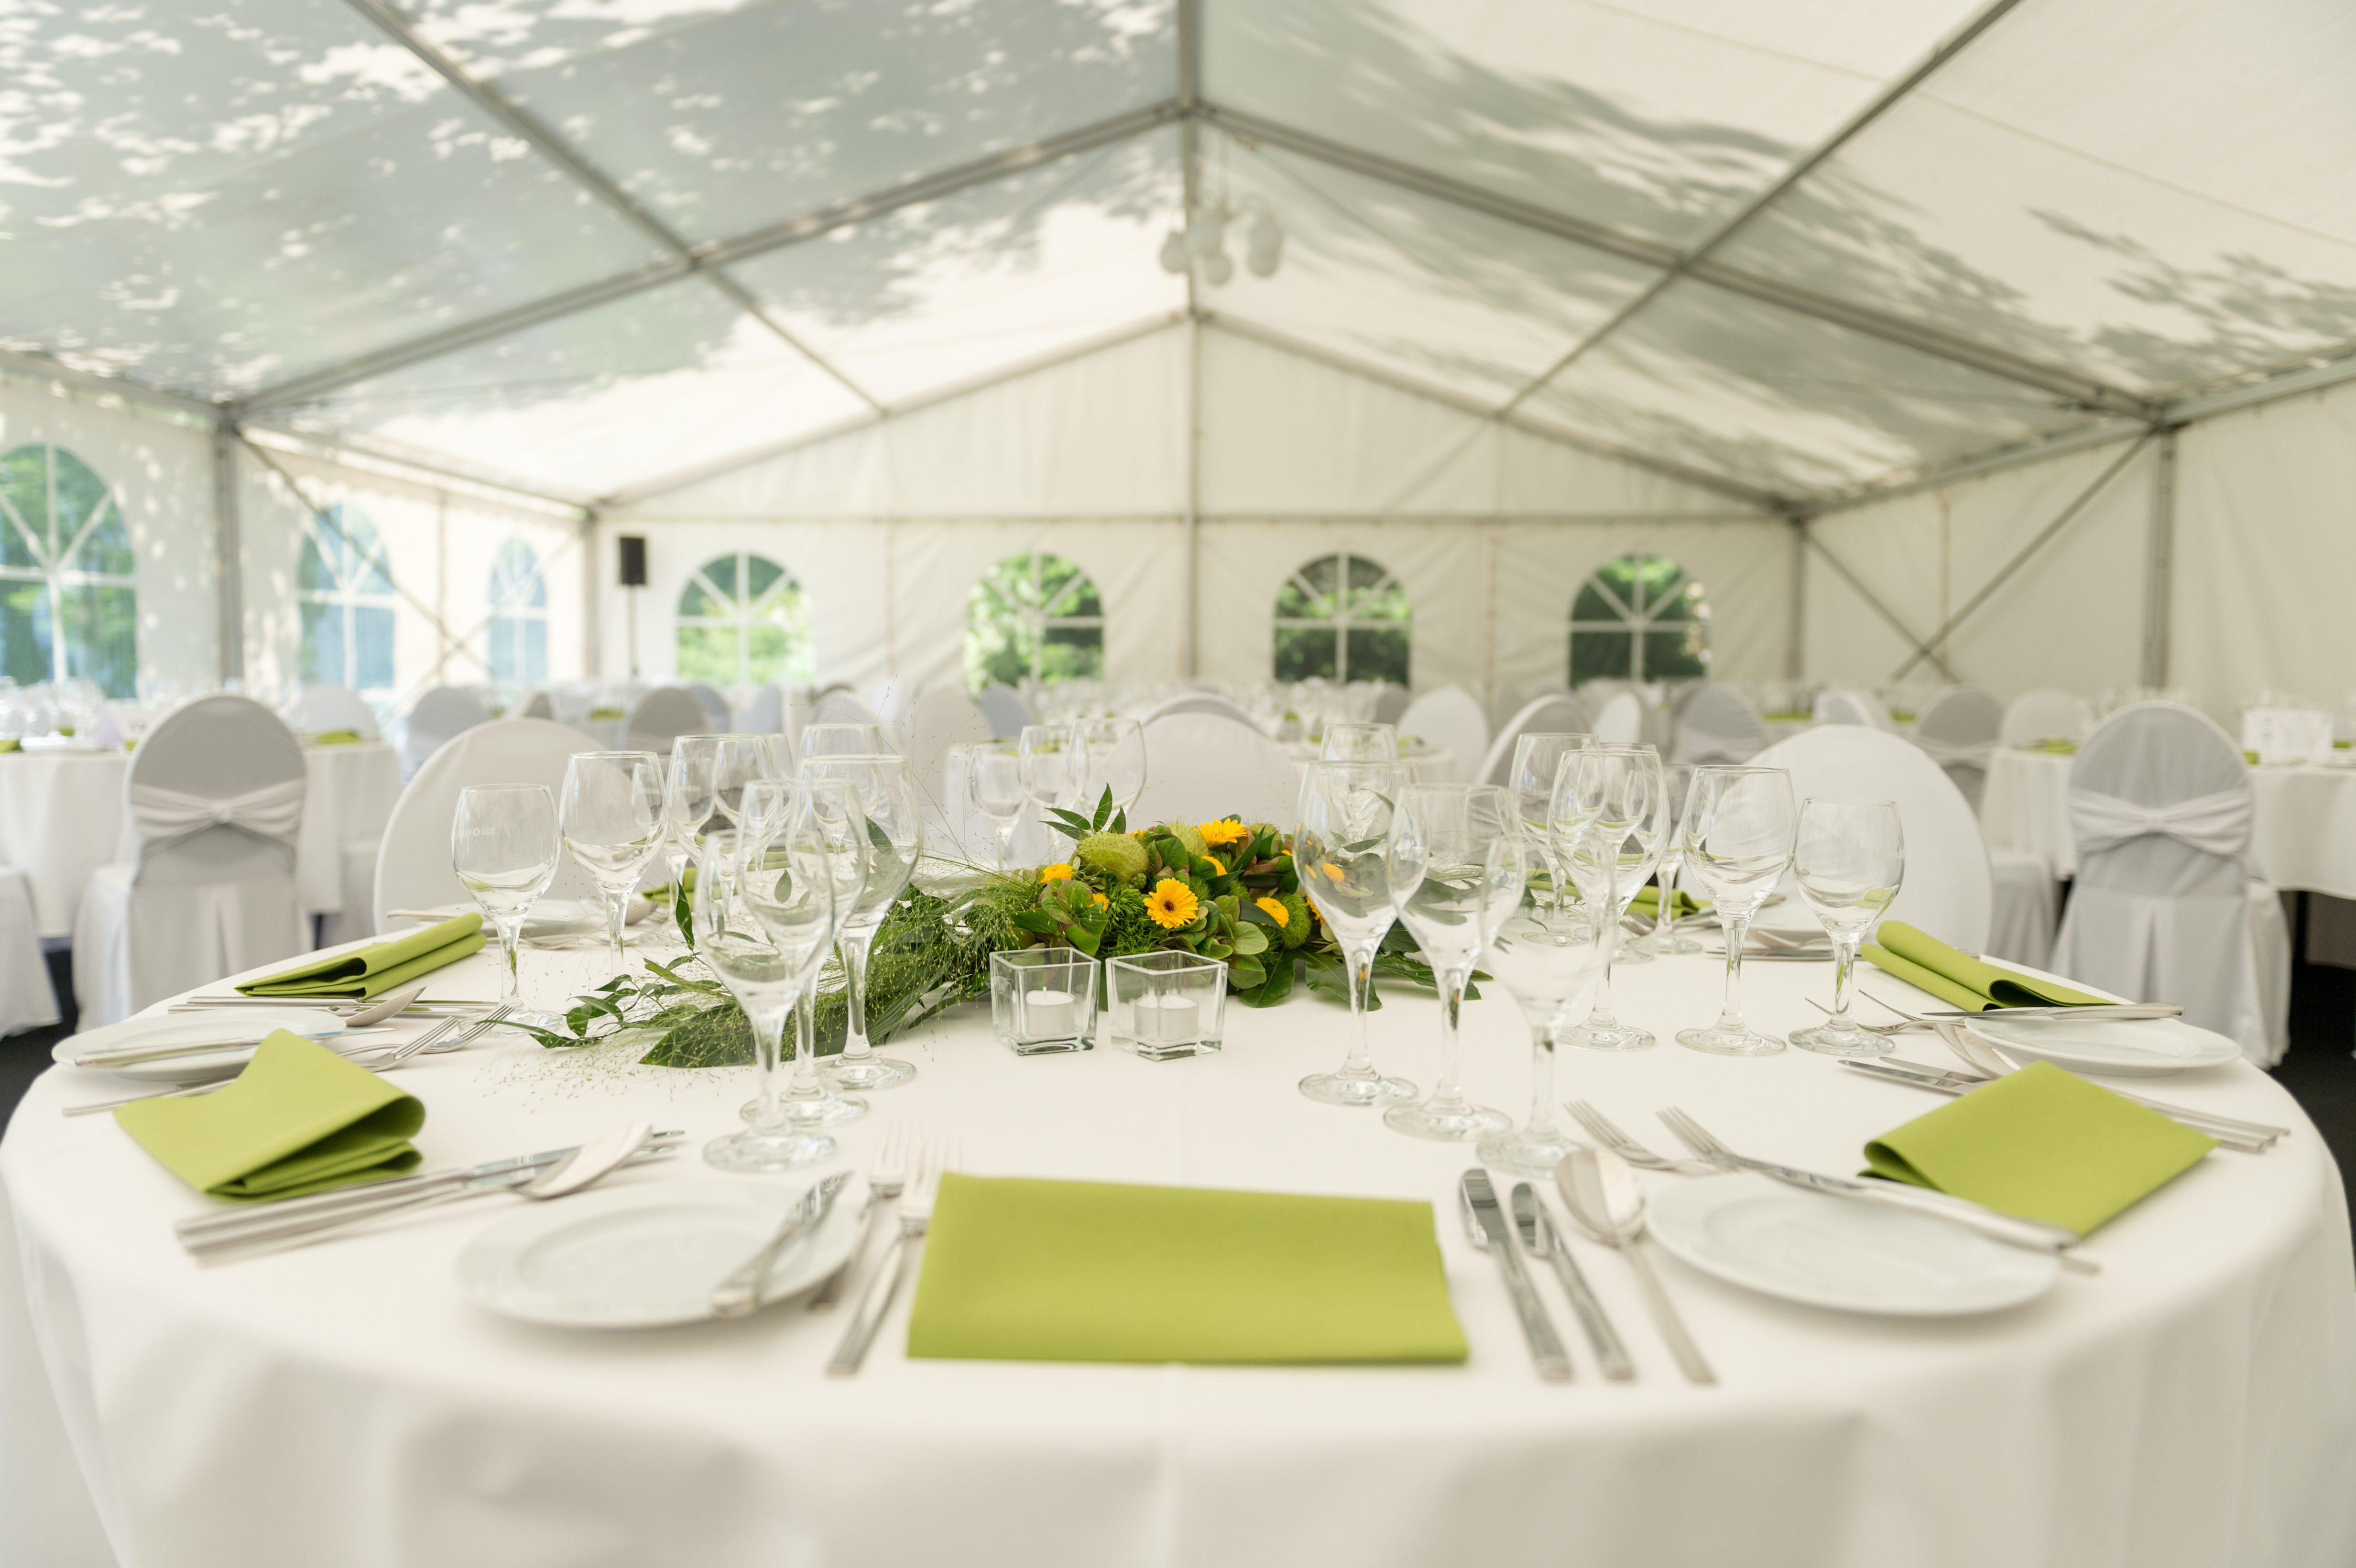 Catering-Ambiente Roth Catering & Events